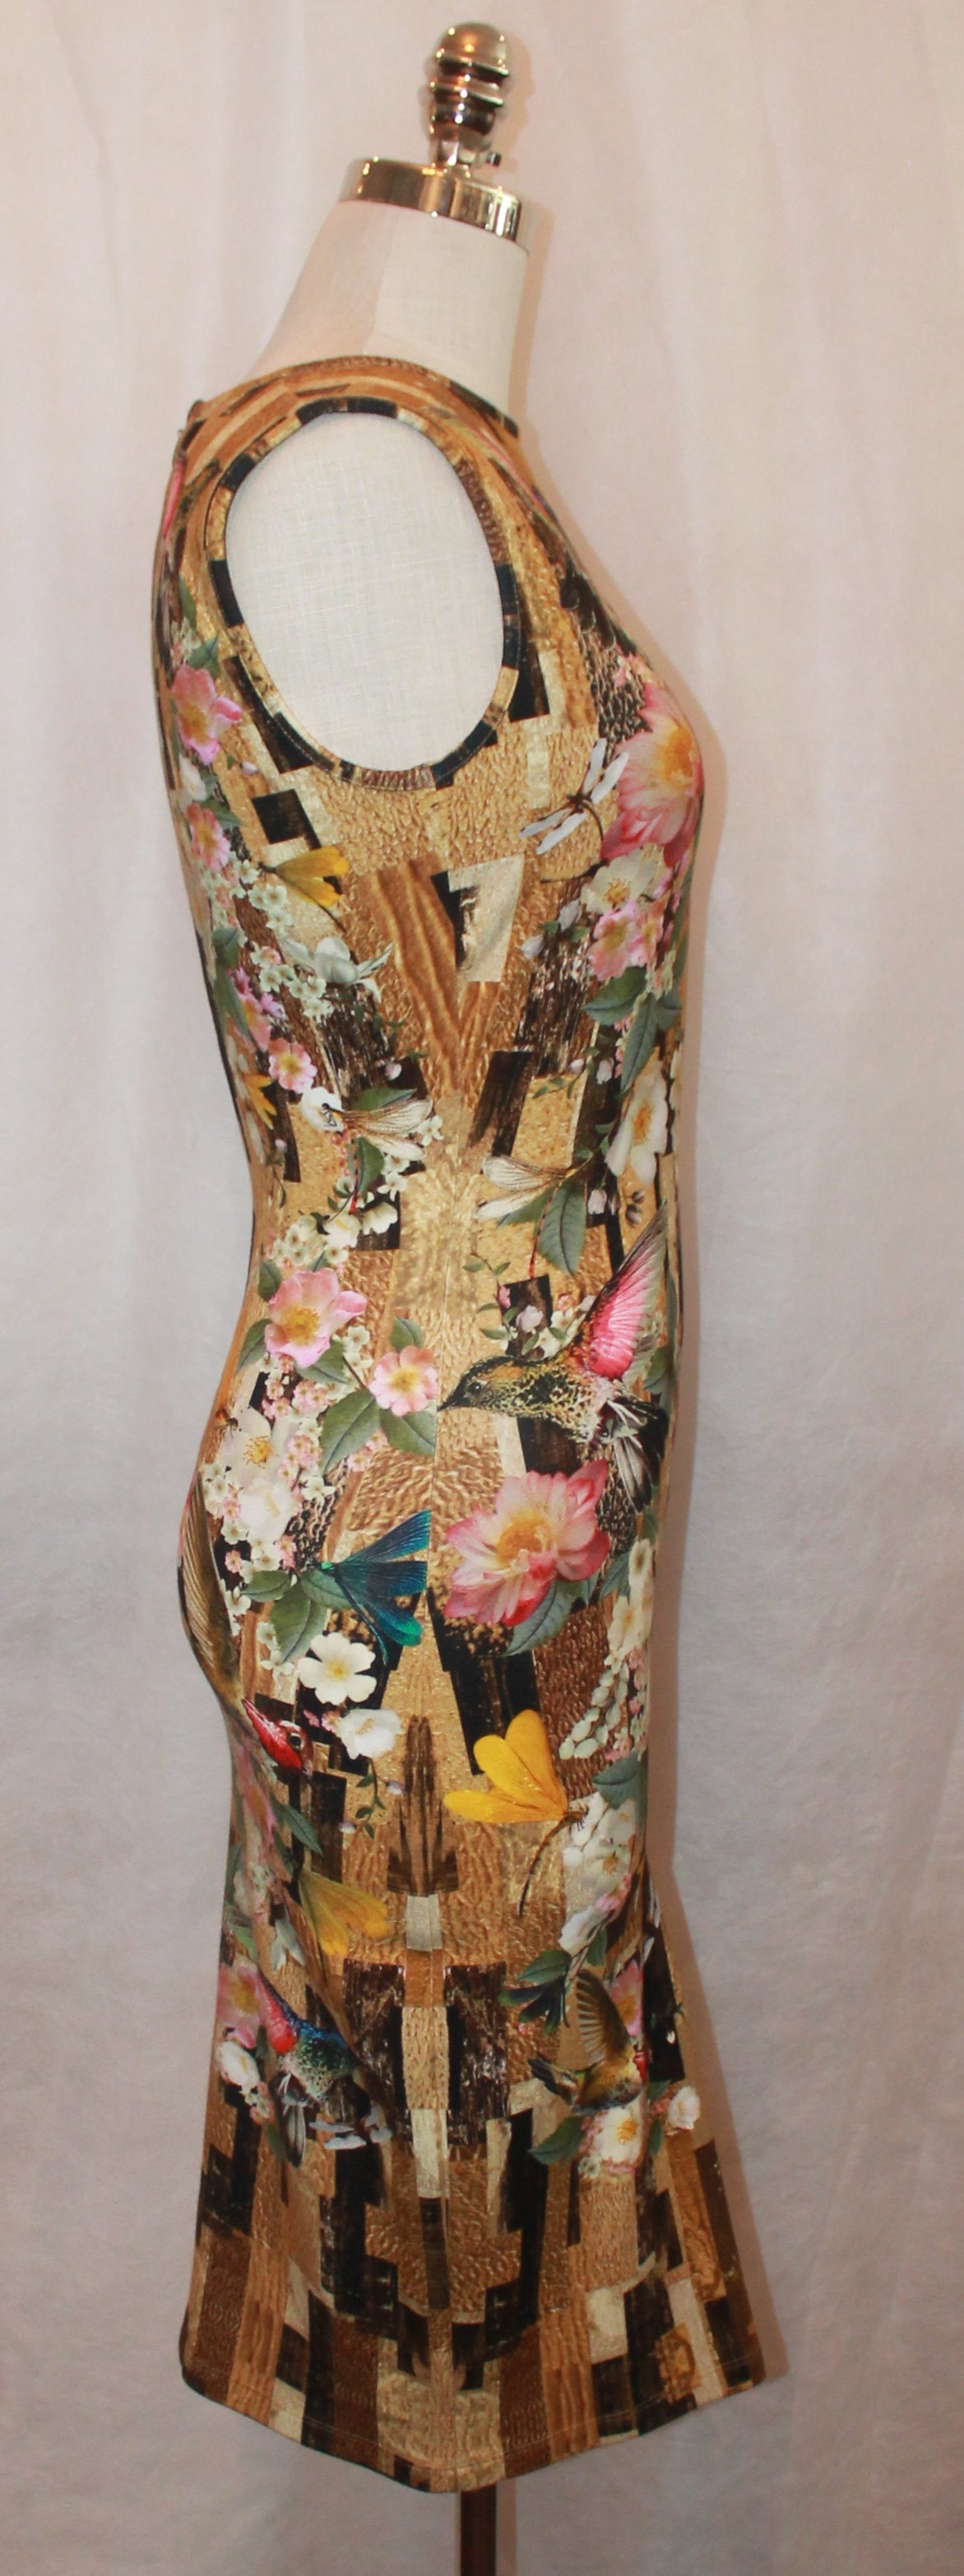 Brown Alexander McQueen 2013 Resort Hummingbird & Floral Print Fitted Dress - M For Sale